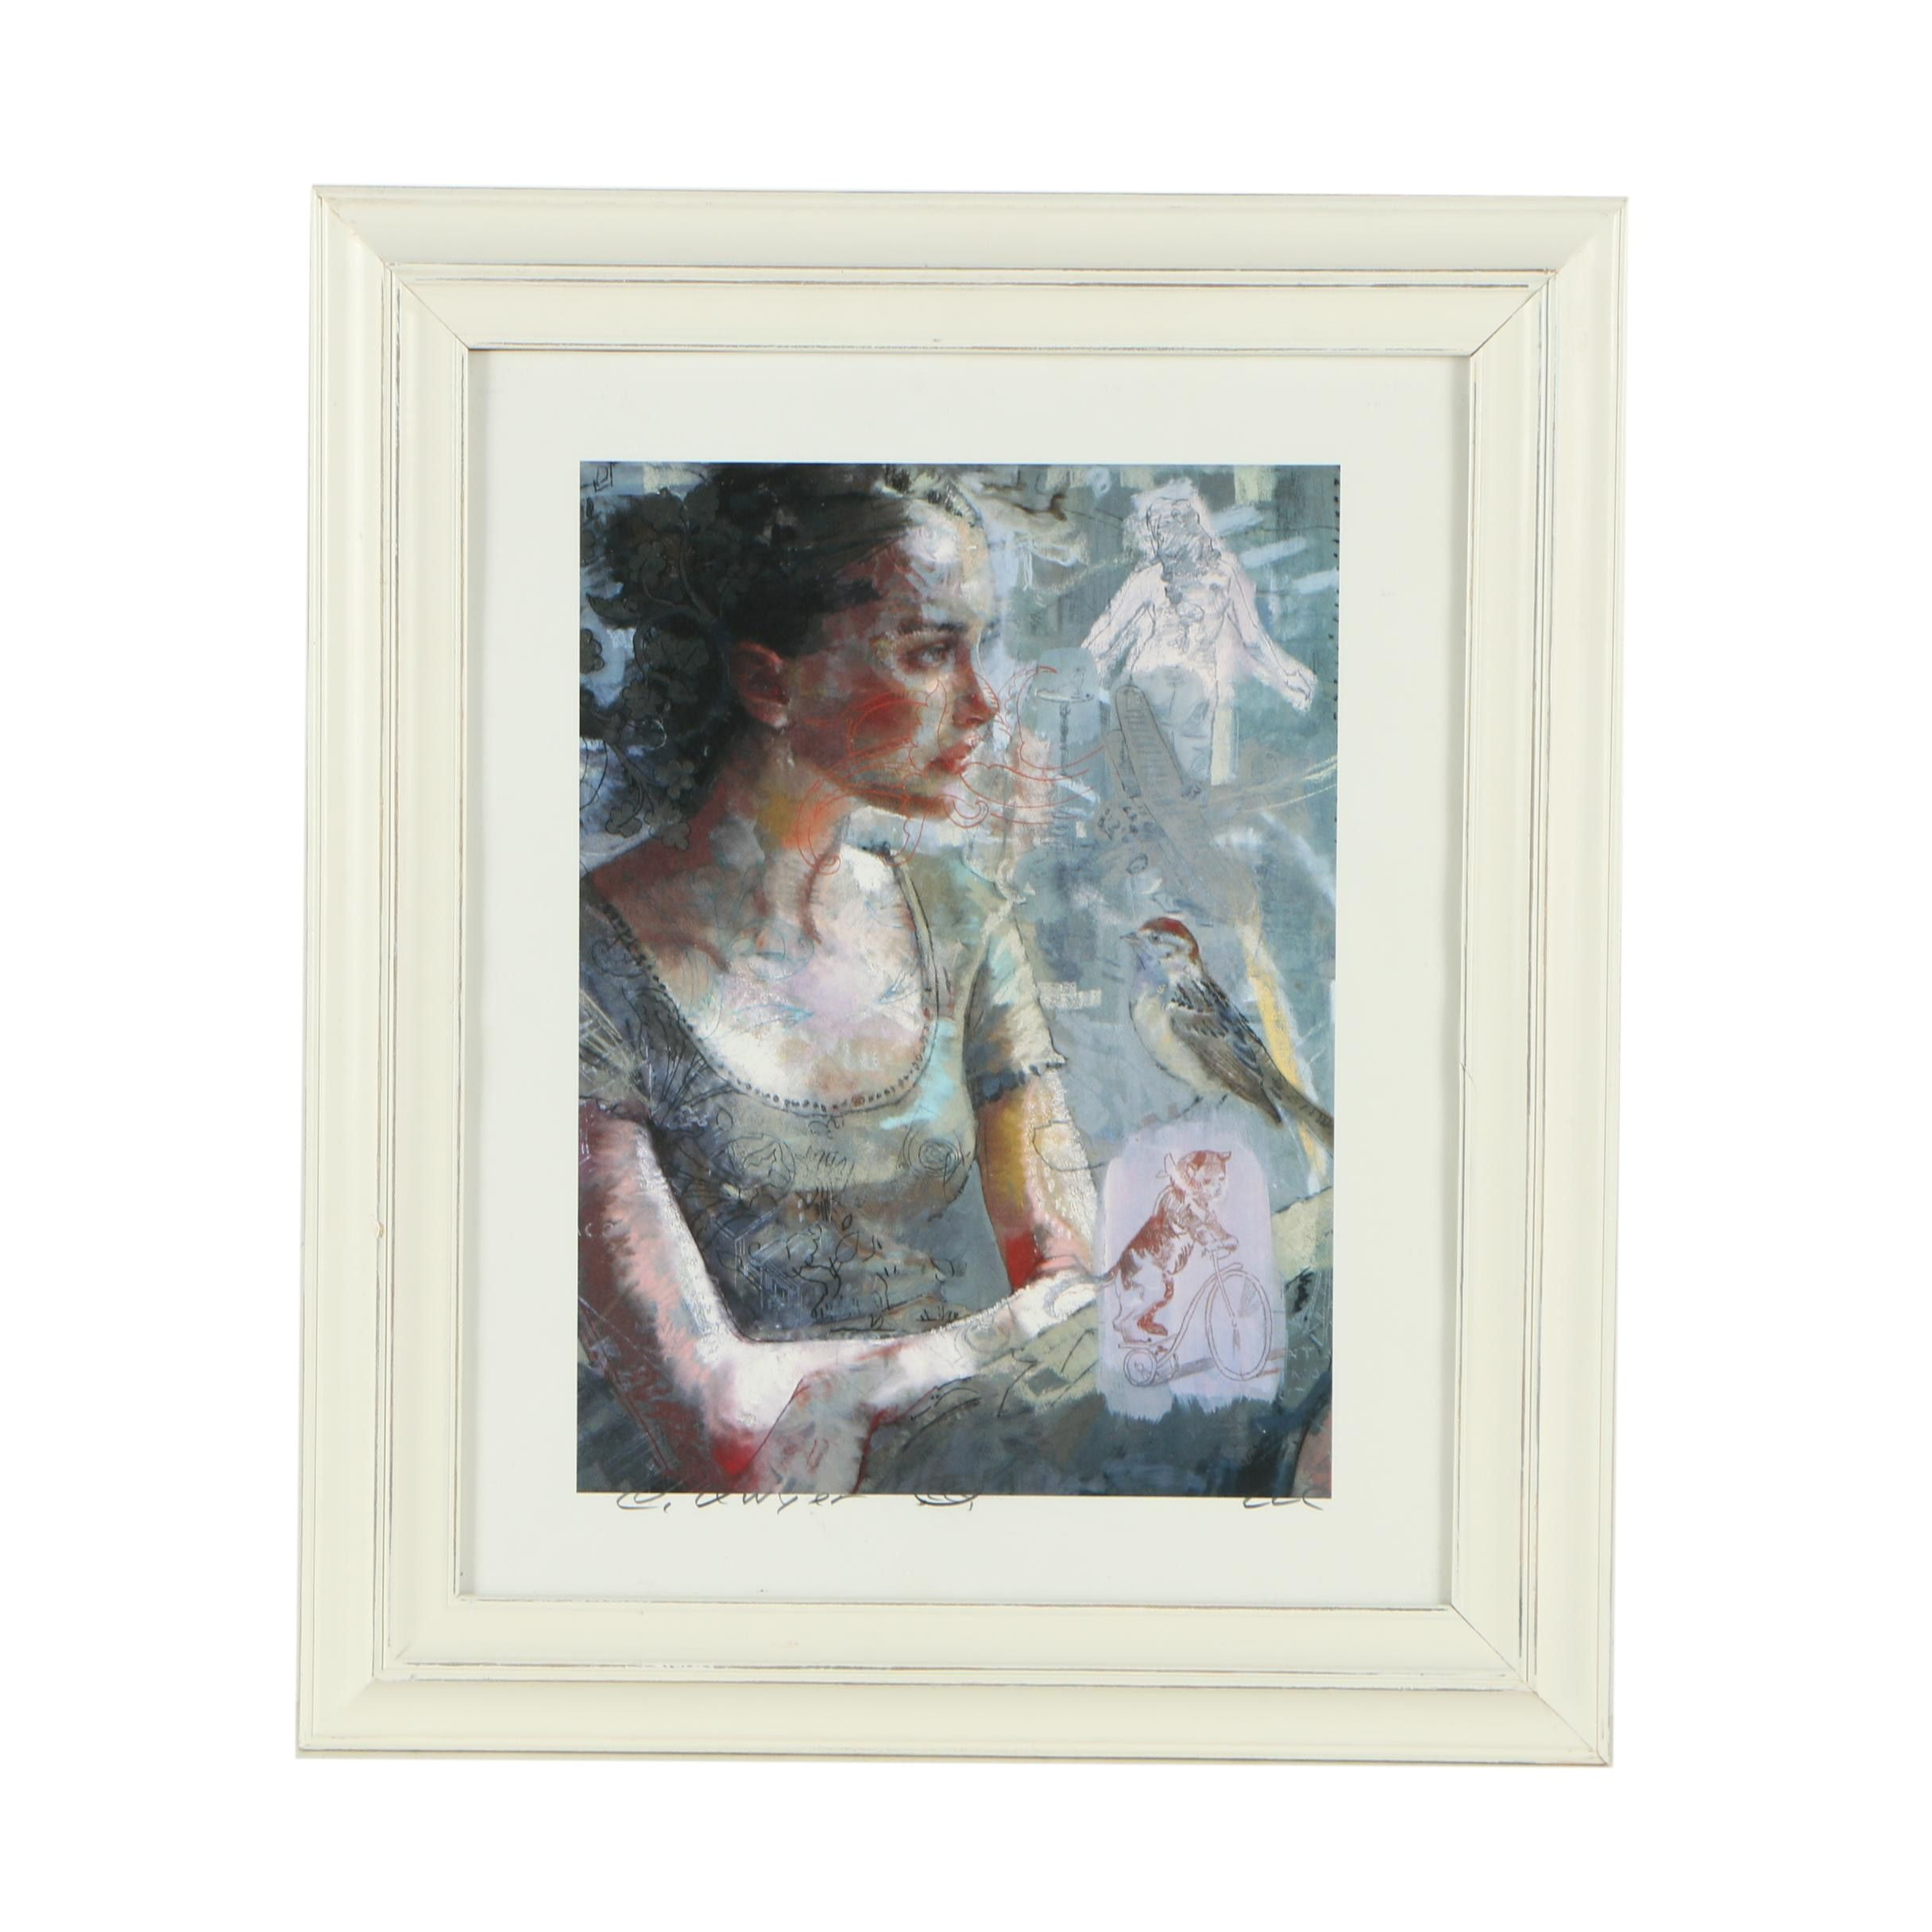 Giclée Reproduction Print After Charles Dwyer